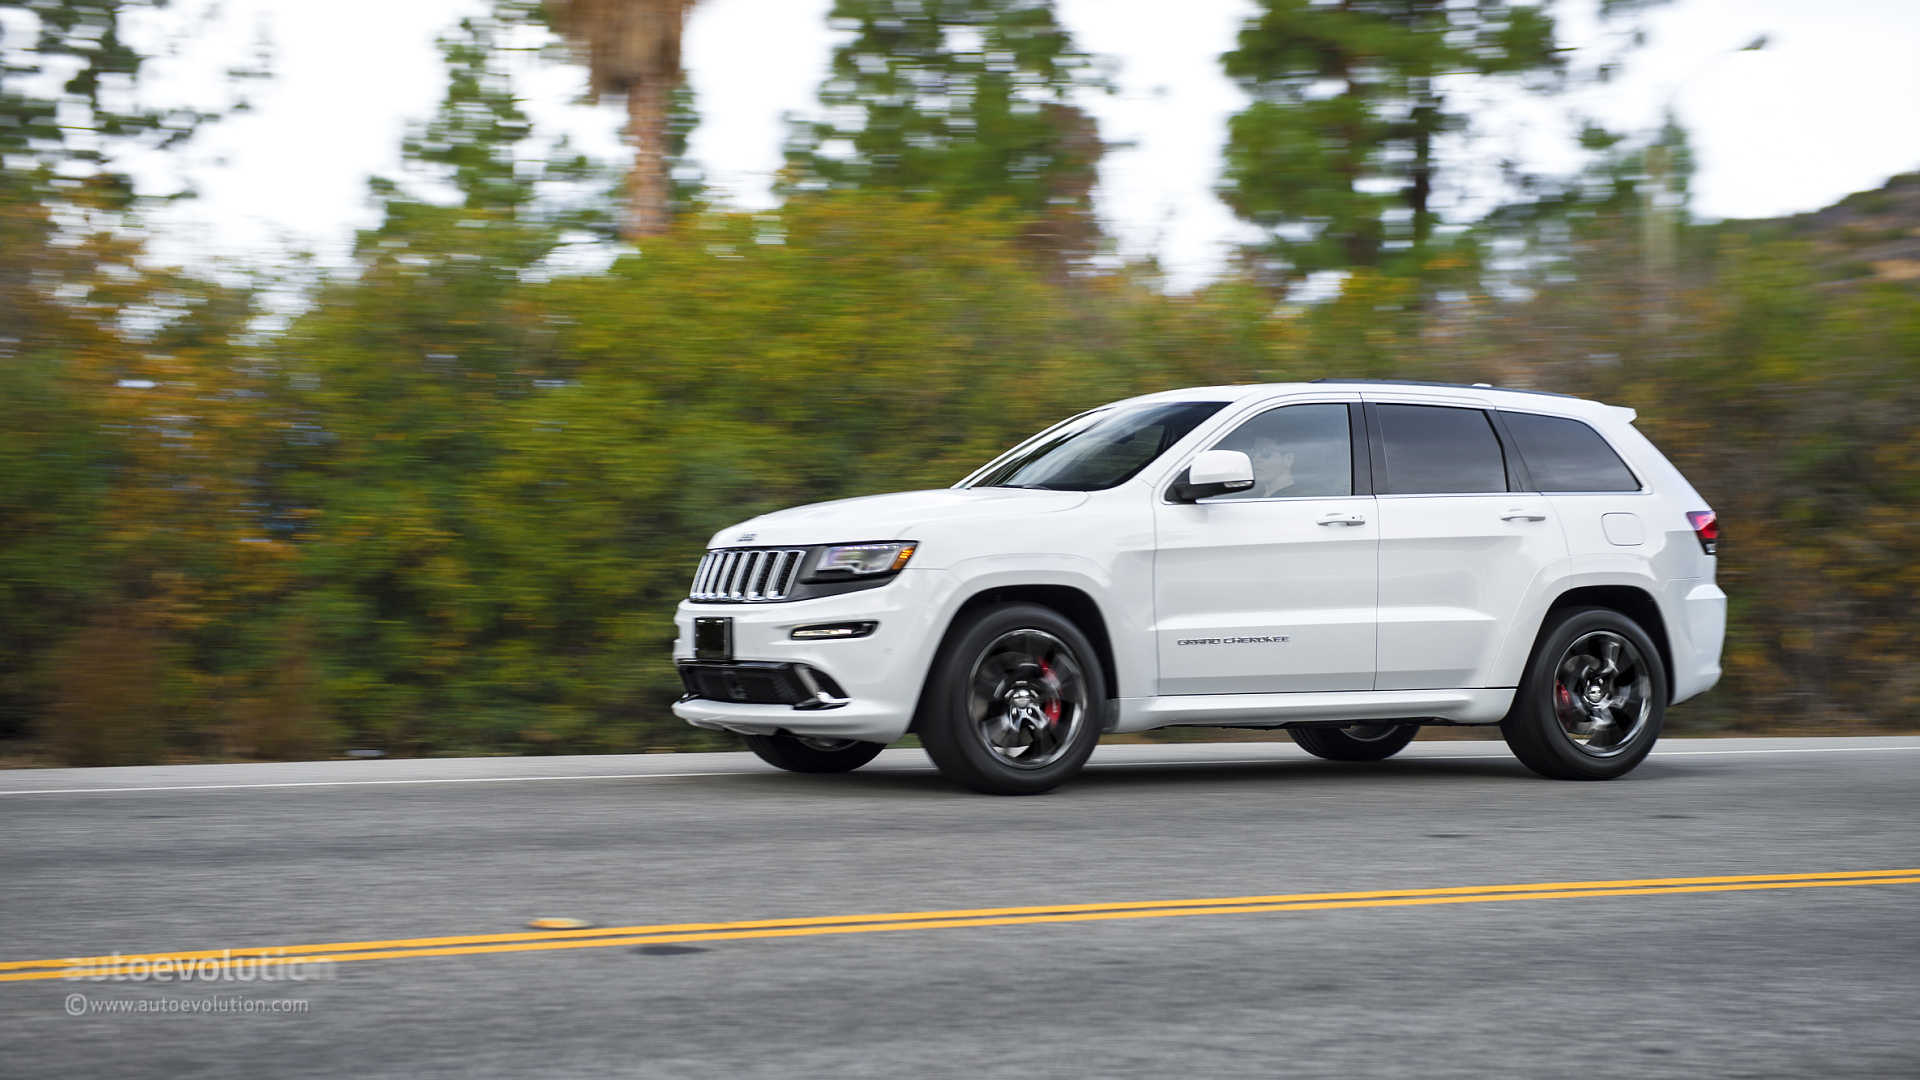 Jeep Grand Cherokee Hellcat Trailhawk Reportedly Green Lit for